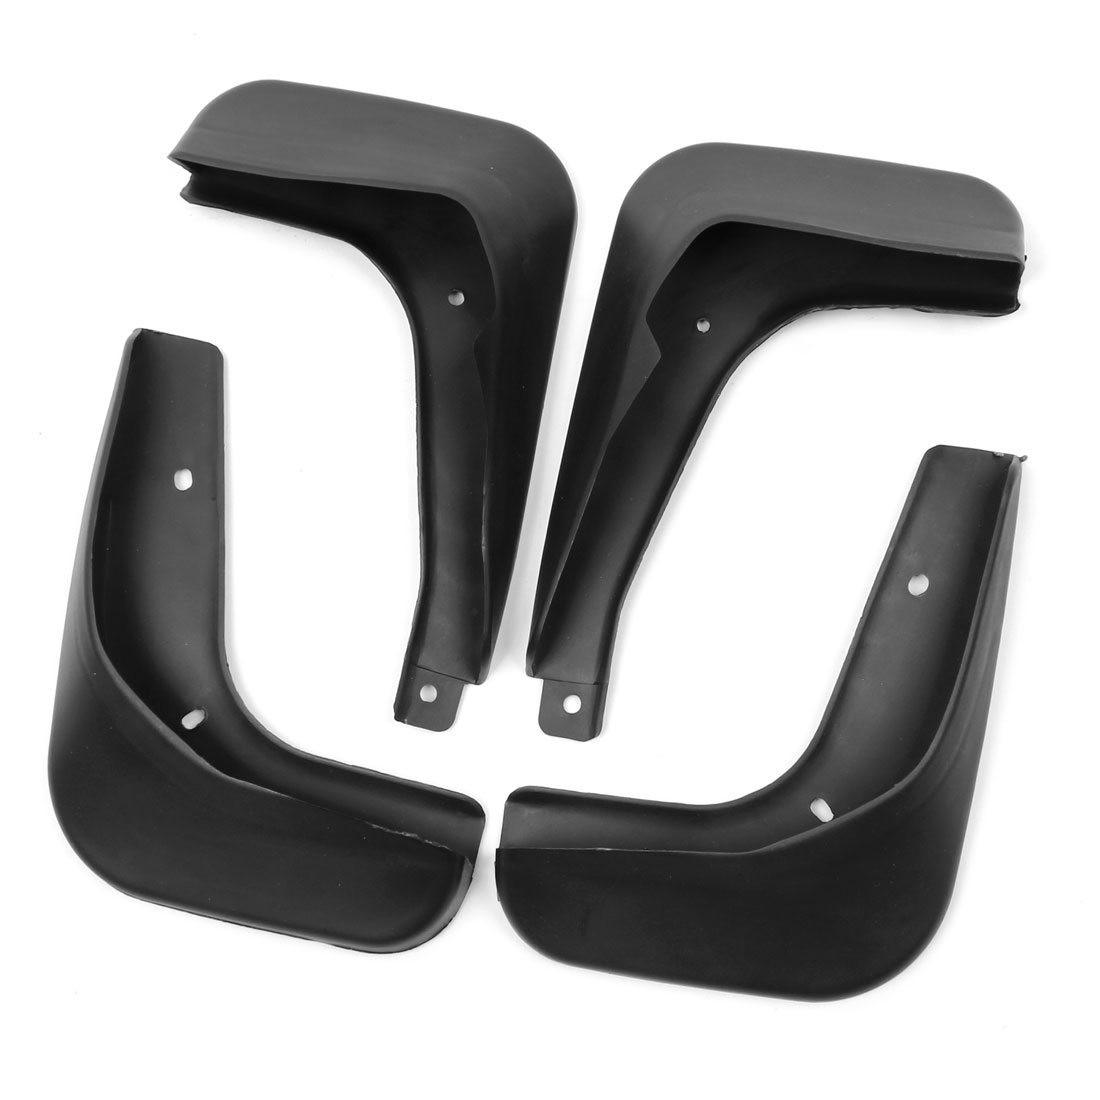 4 in 1 Car Splash Guards Front Rear Mud Flaps Set for Volkswagen Polo 2011